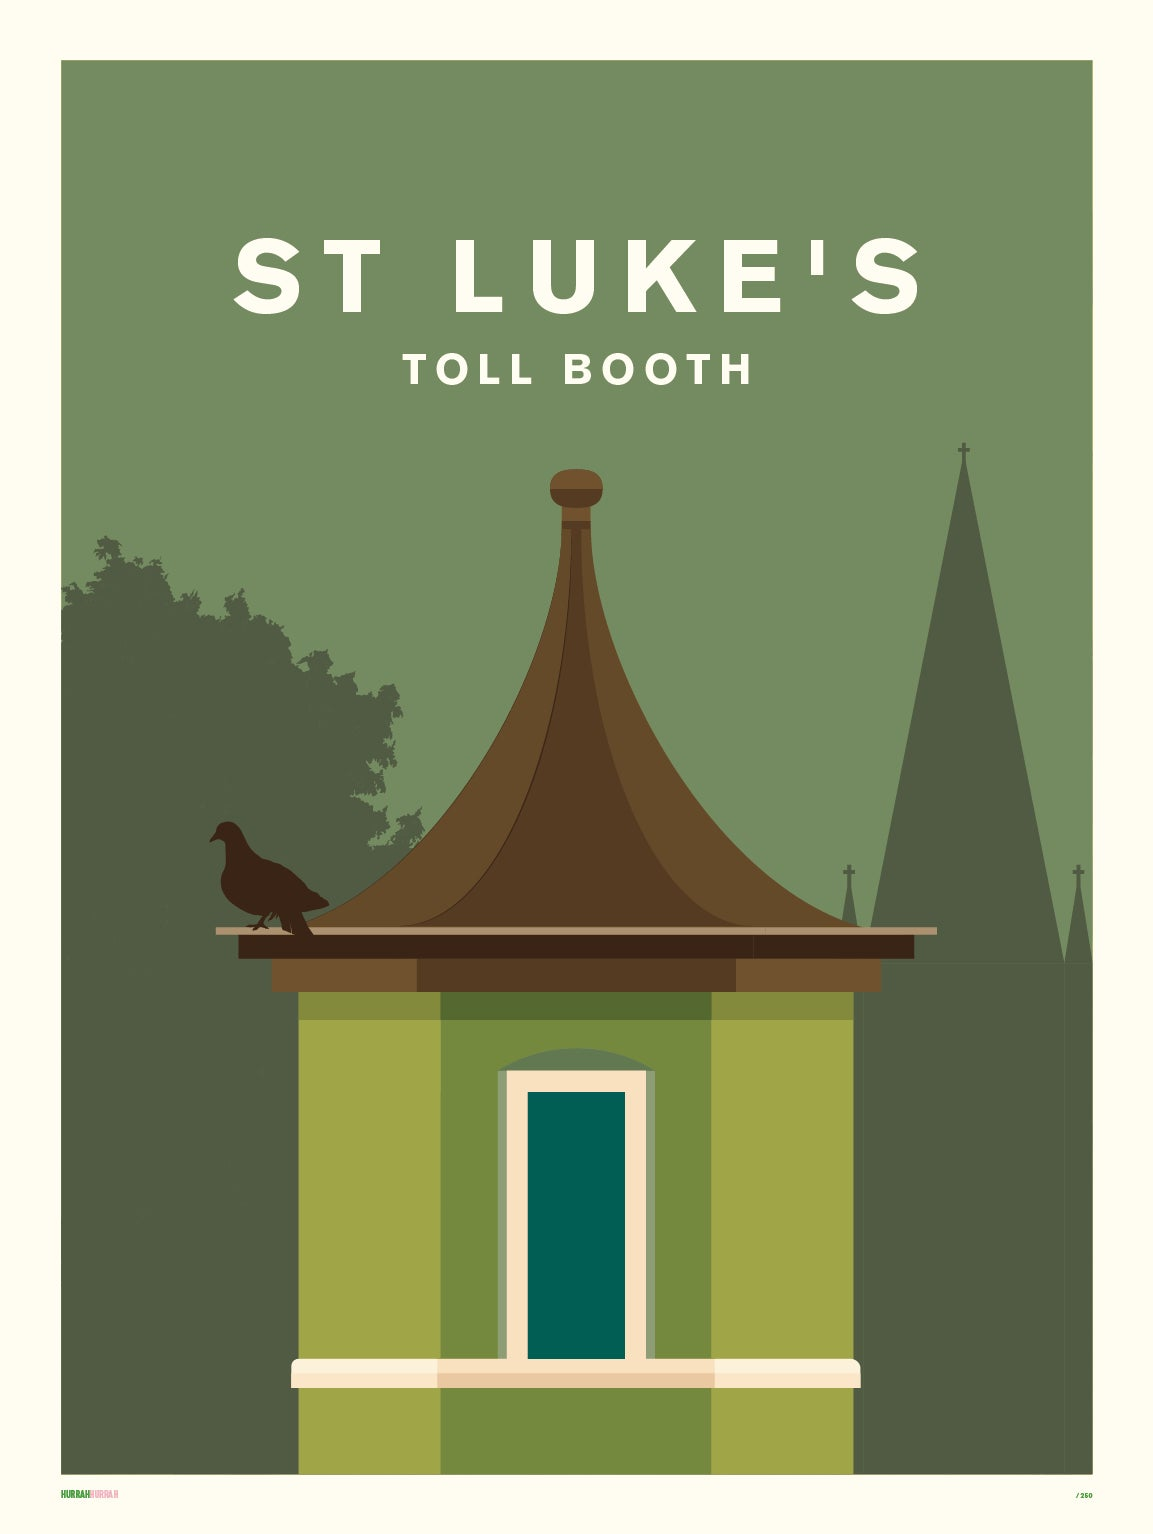 St. Lukes Toll Booth